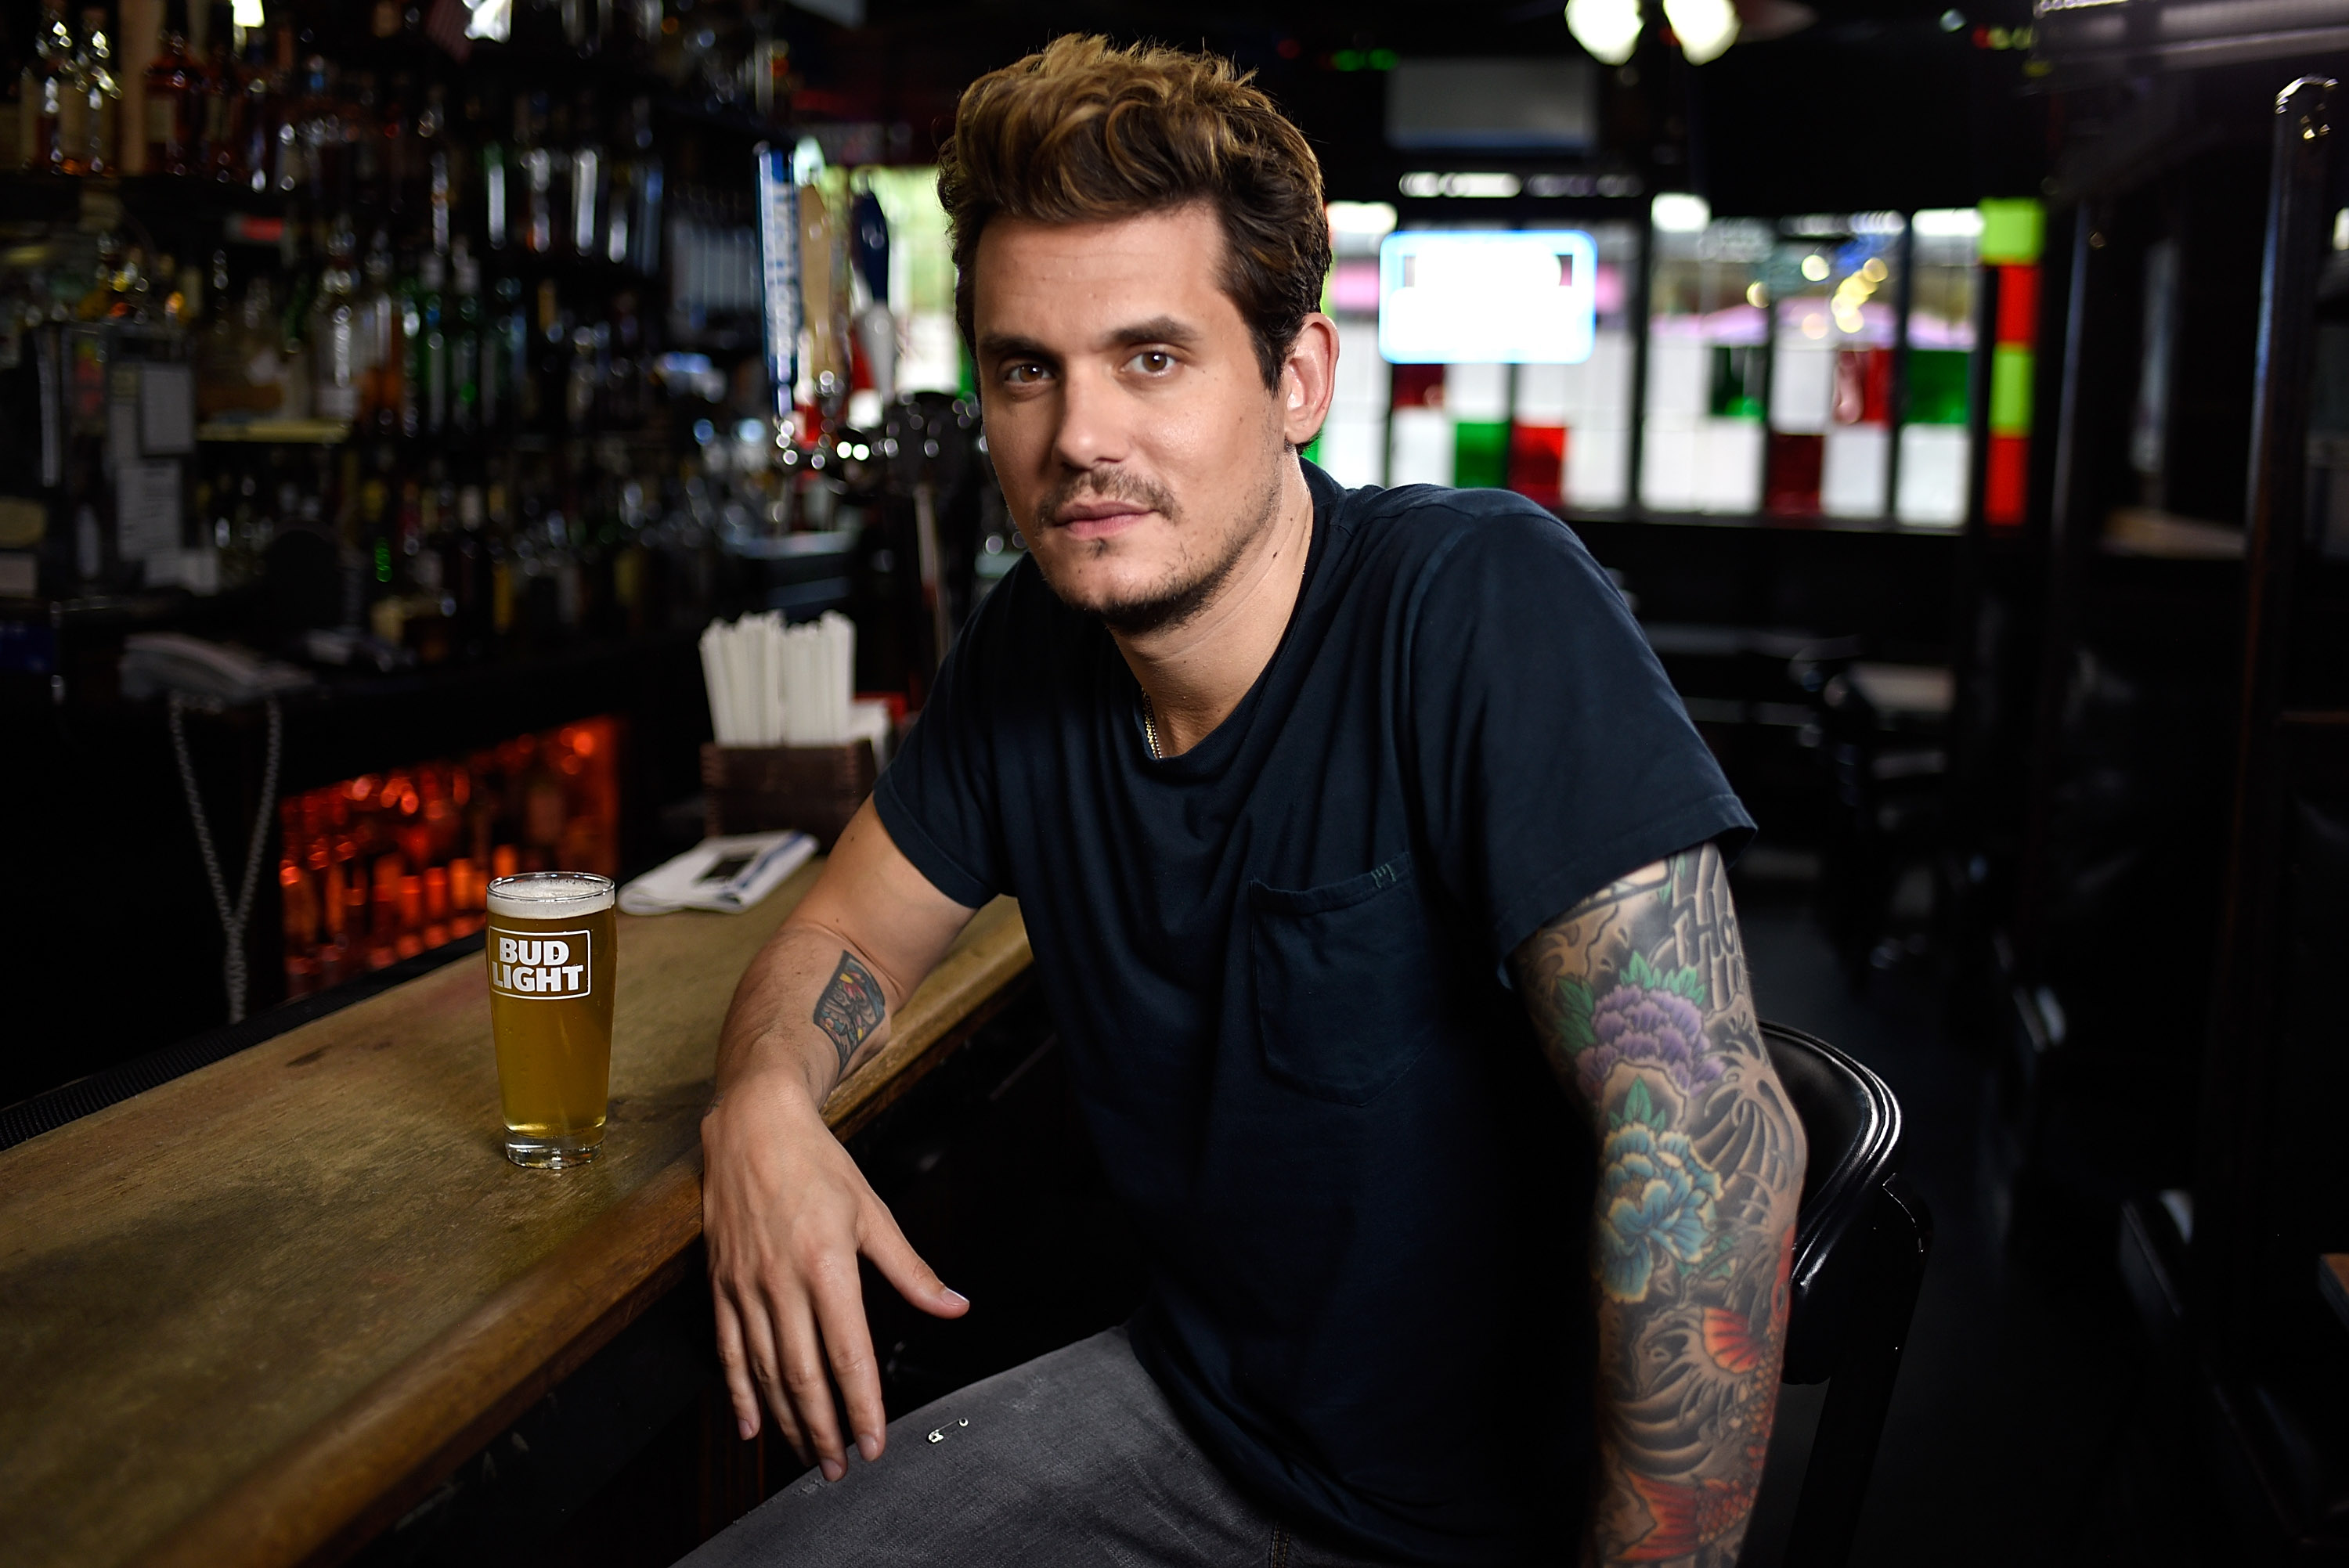 John Mayer Reveals Why He Gave Up Drinking After Drake's Birthday Party